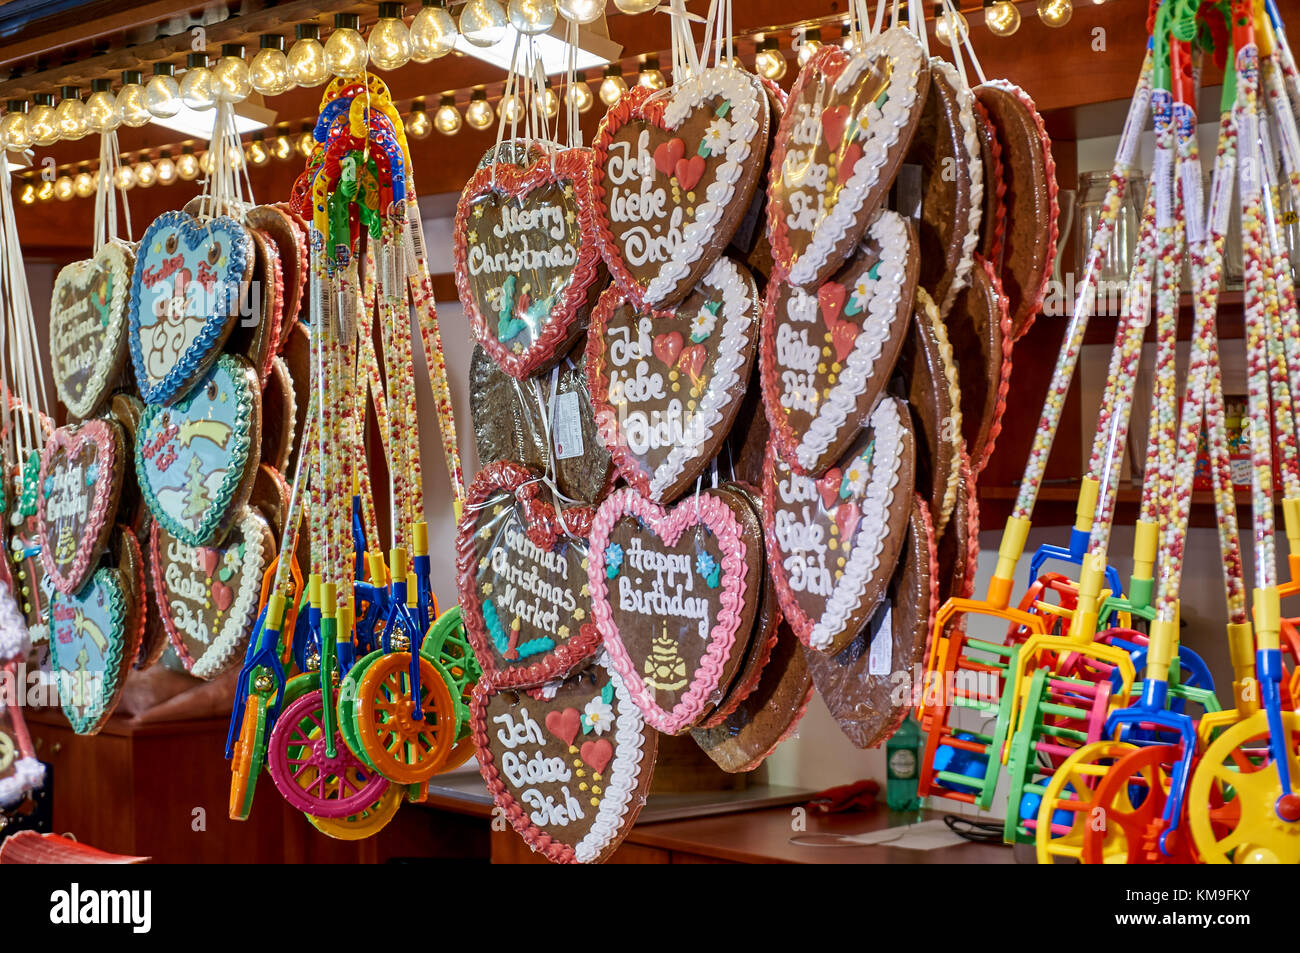 Glasgow, Scotland - 1 December 2017 : Christmas sweets and decorations on a street marked during the festive period. - Stock Image